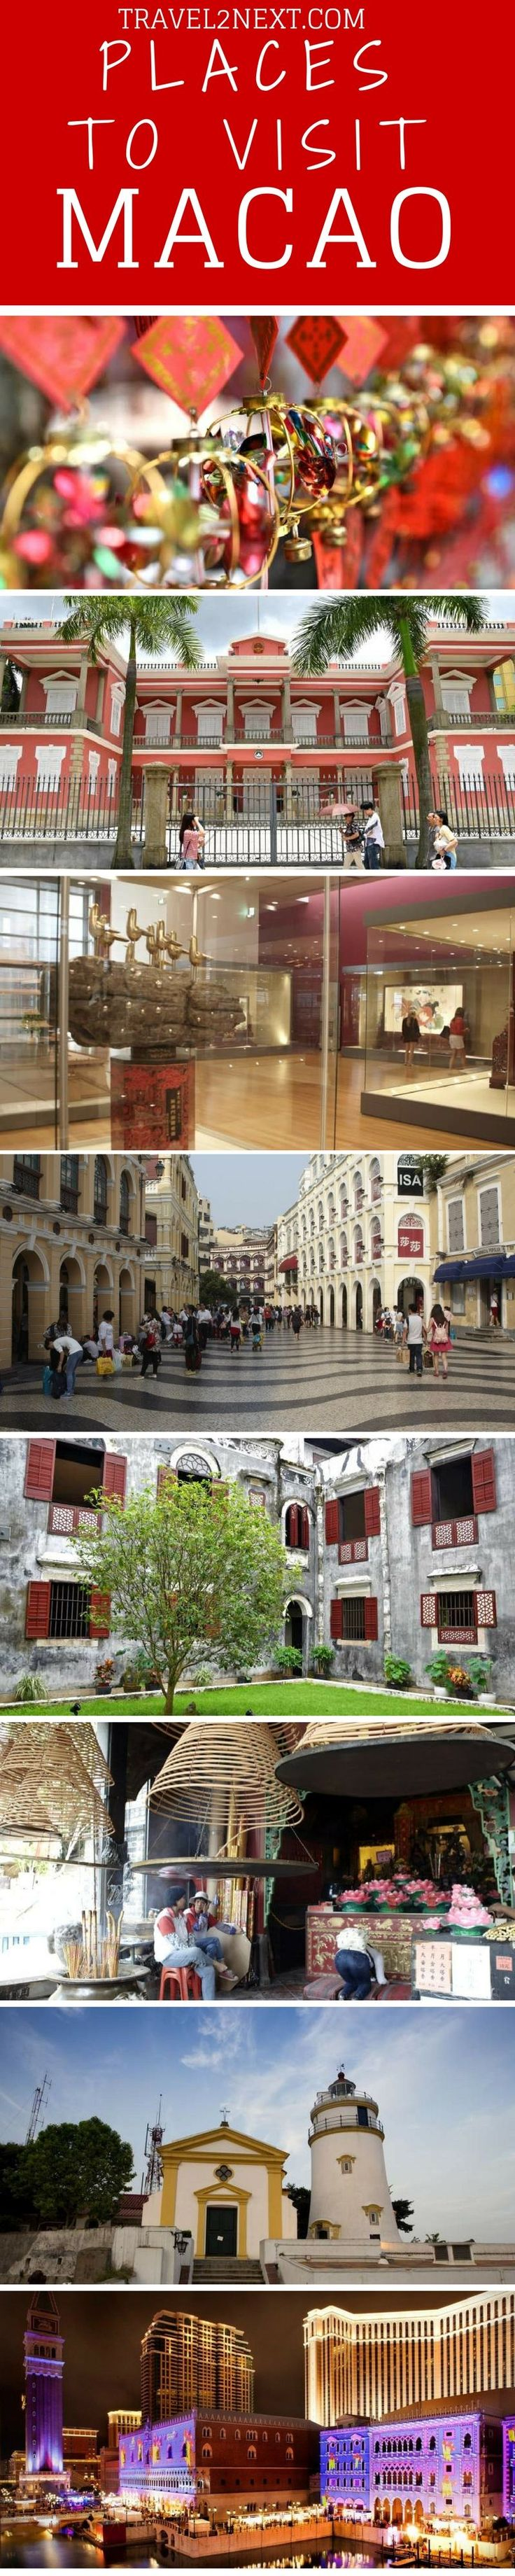 20 places to visit in Macao. Macao is a mysterious melding of east and west, a fusion of ancient architecture and high-tech pizazz.